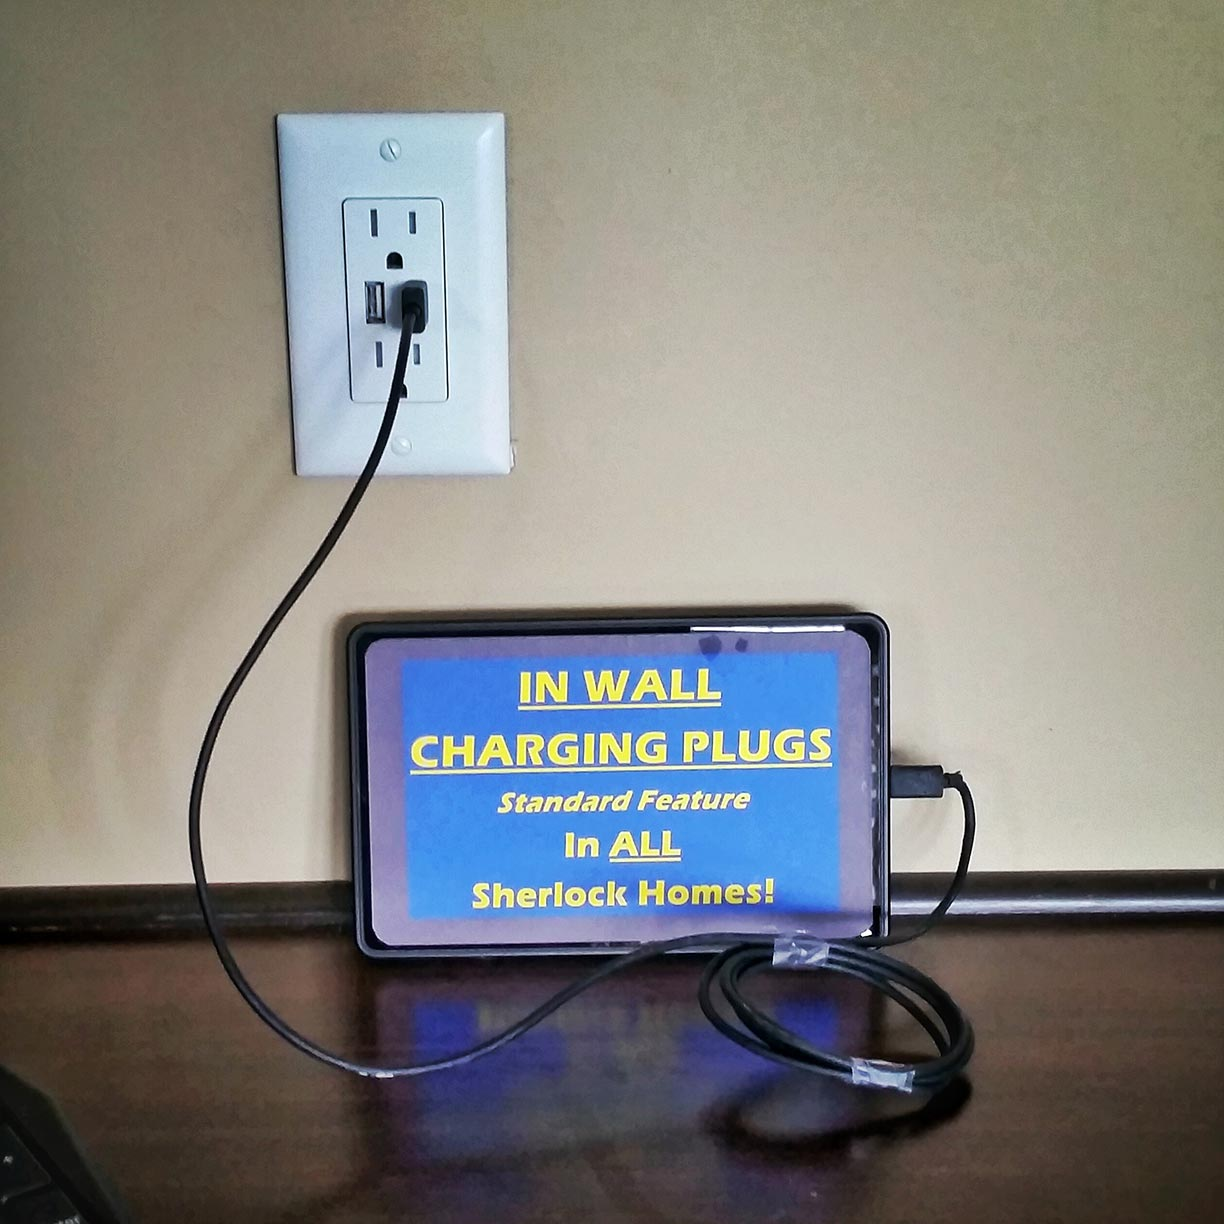 In Wall USB Charging Outlet Standard. Eliminating the charging cord clutter on your counter.